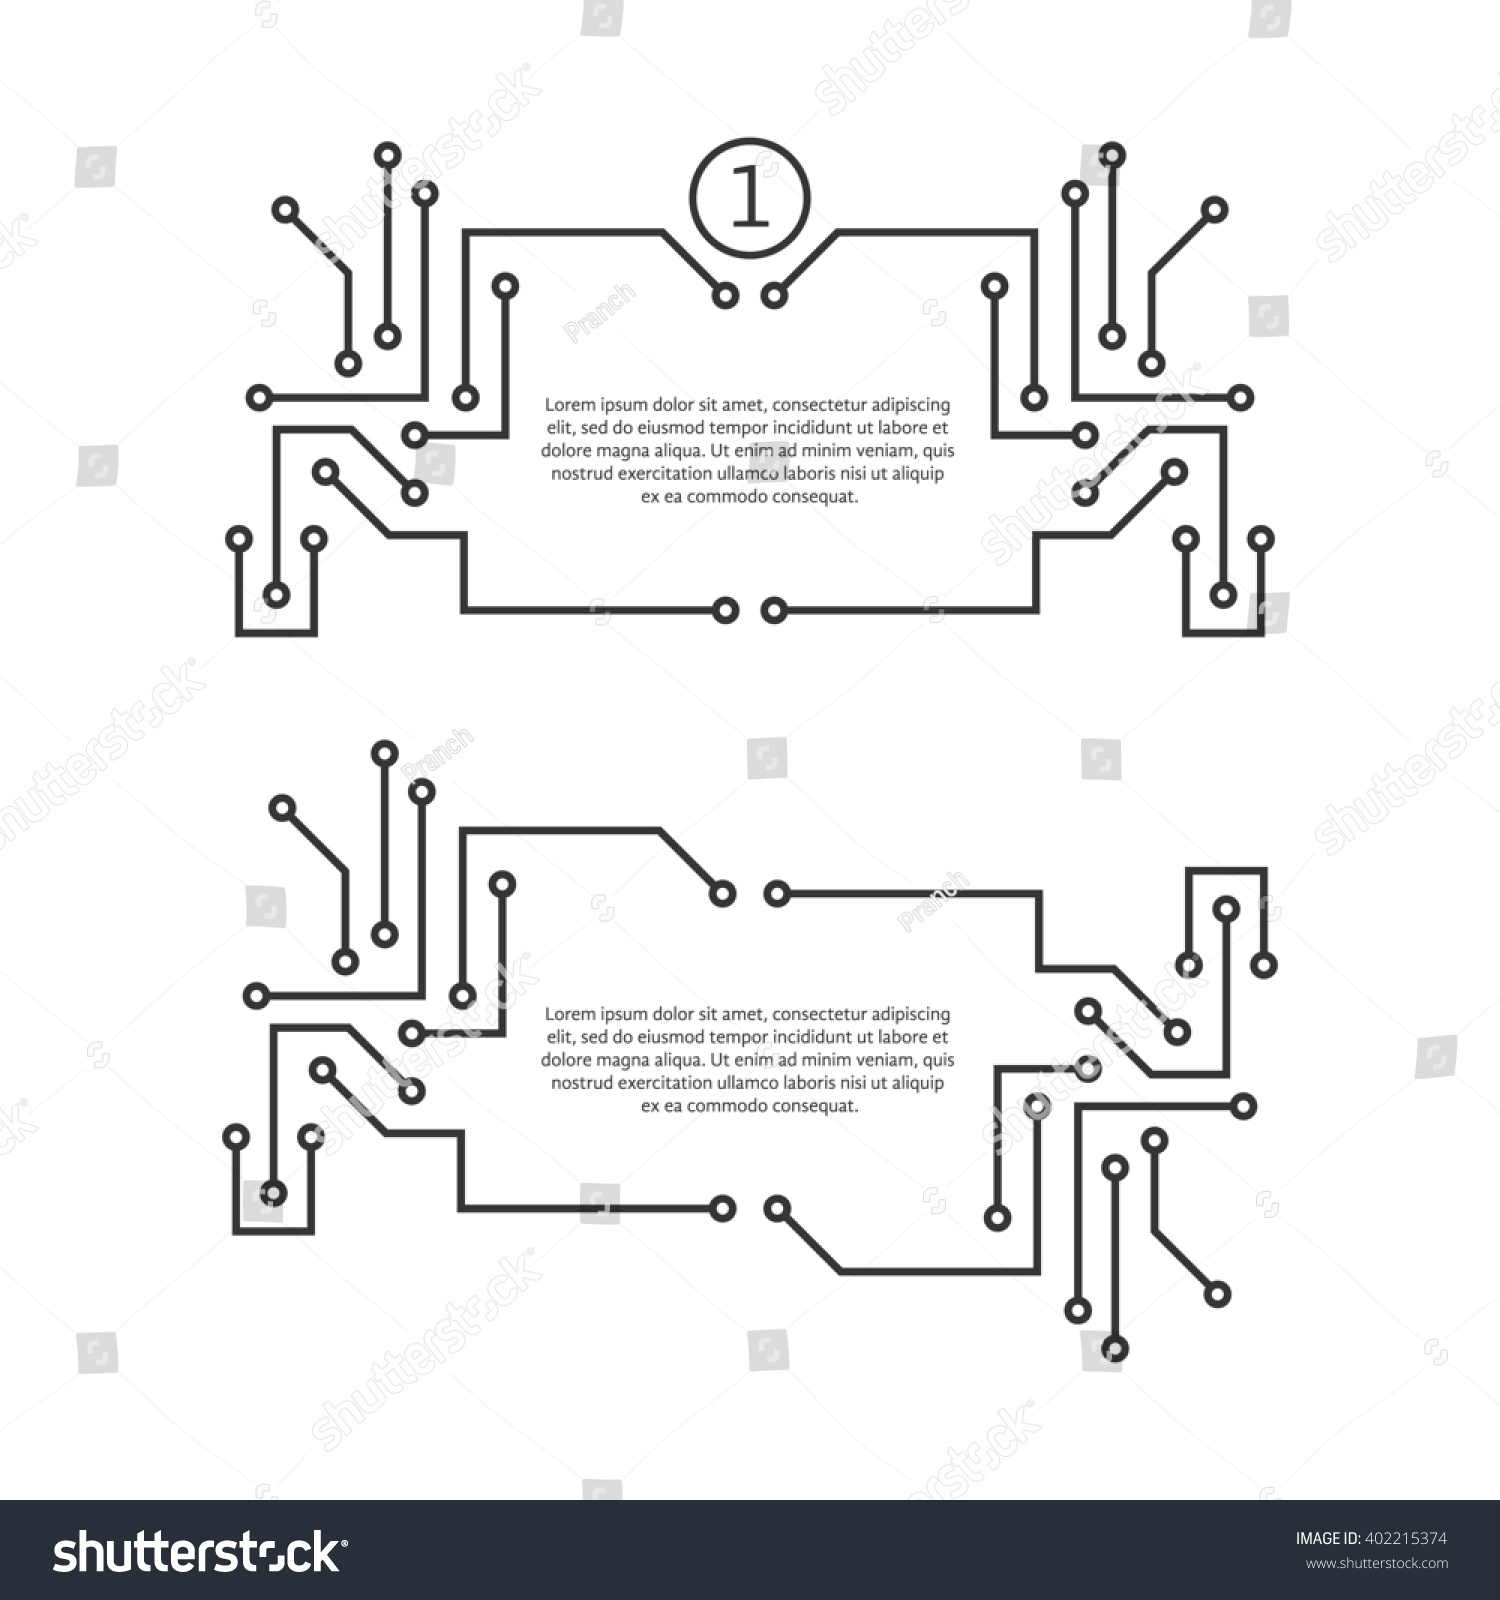 Printed Circuit Board Diagram Like Quote Text Stock Illustration Royalty Concept Of Futuristic Engineering Textbox Template